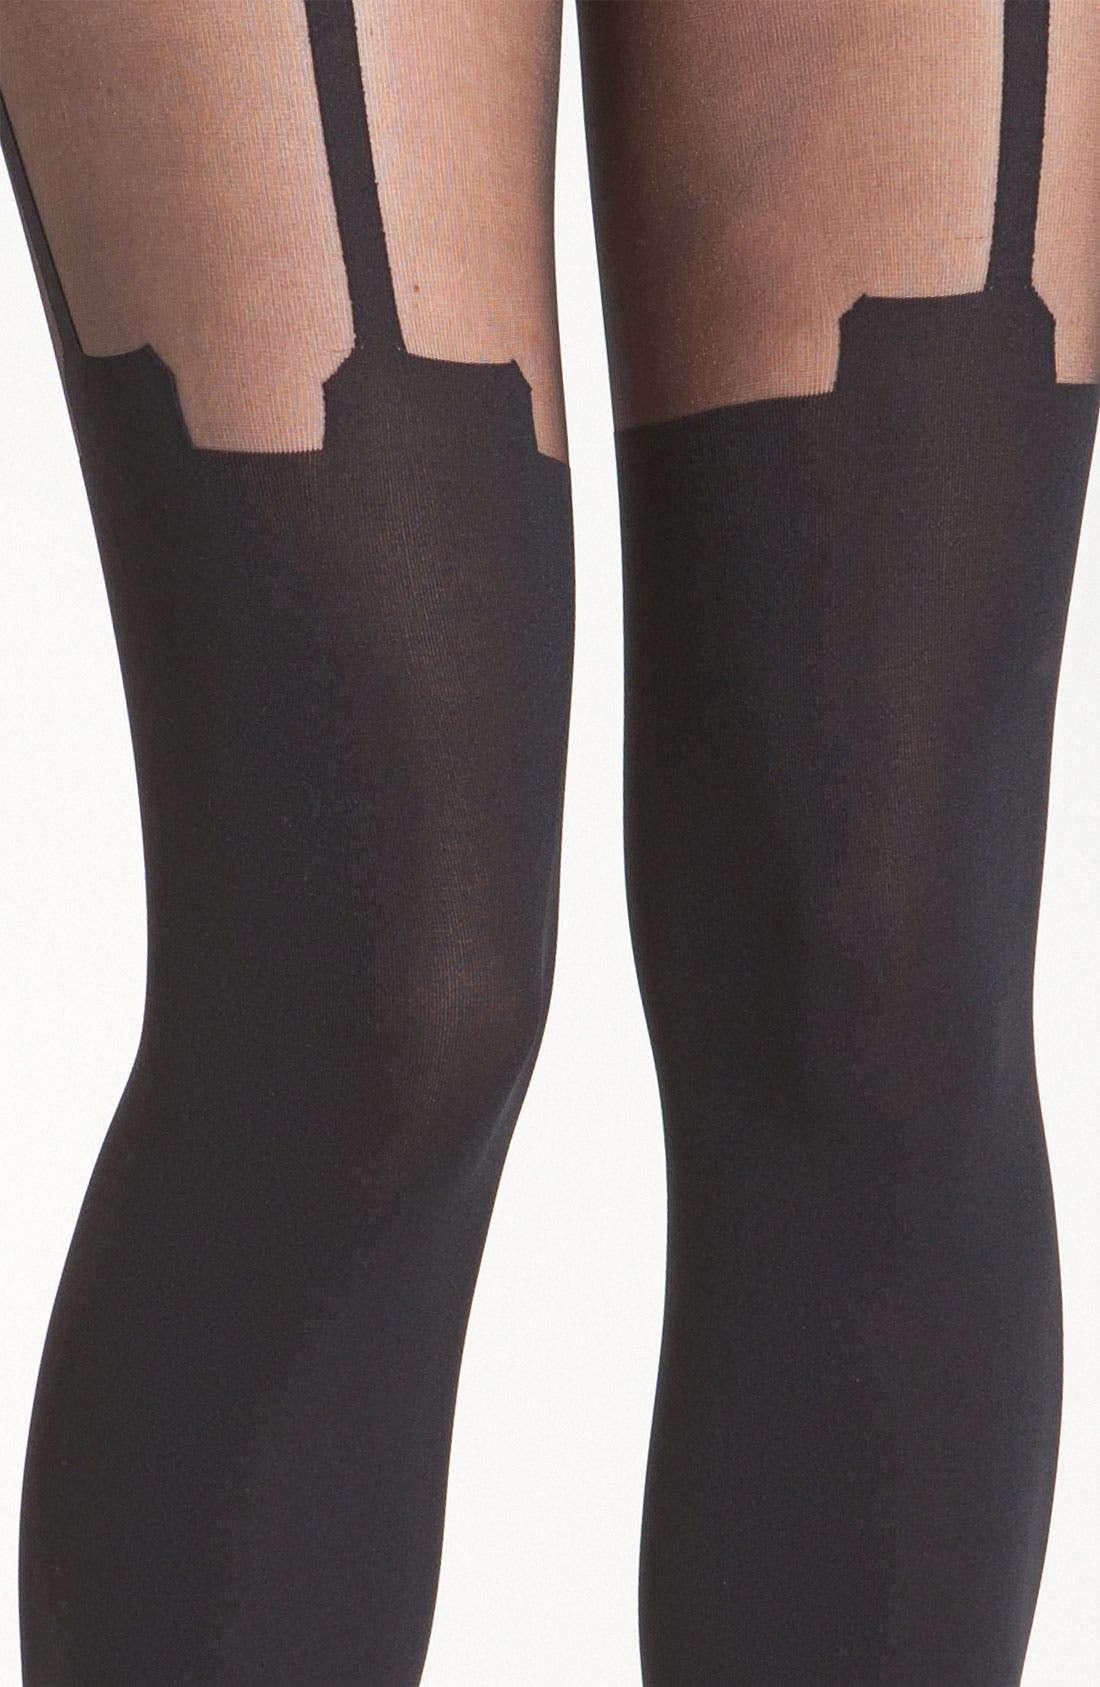 Alternate Image 2  - Pretty Polly 'House of Holland Super Suspender' Tights